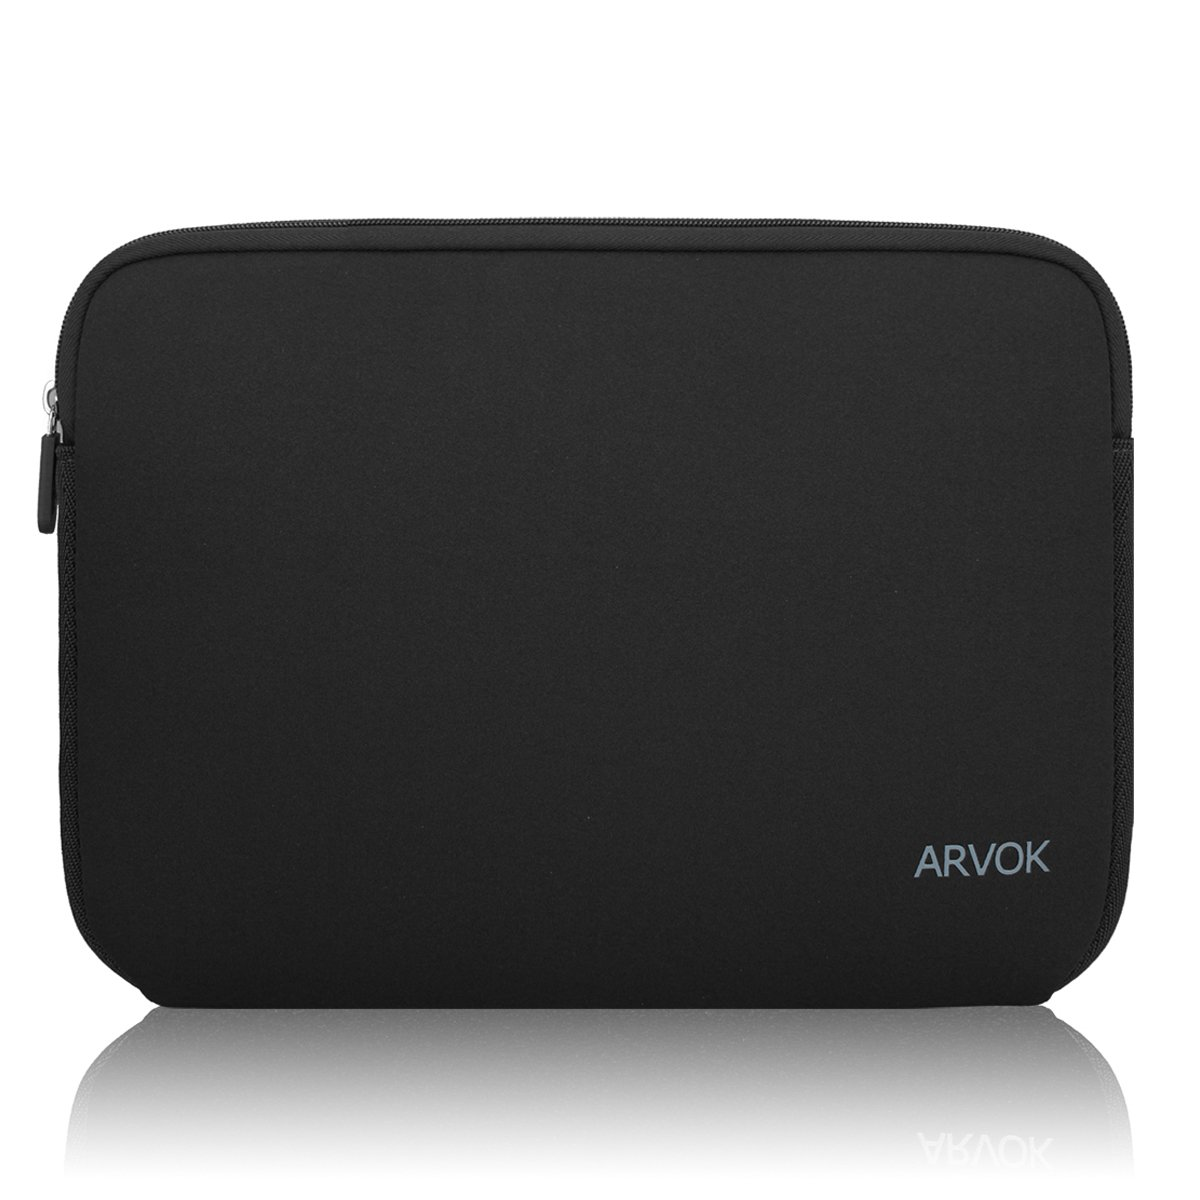 Arvok 11-12 Inch Laptop Sleeve Multi-color & Size Choices Case/Water-resistant Neoprene Notebook Computer Pocket Tablet Briefcase Carrying Bag/Pouch Skin Cover For Acer/Asus/Dell/Lenovo, Black by ARVOK